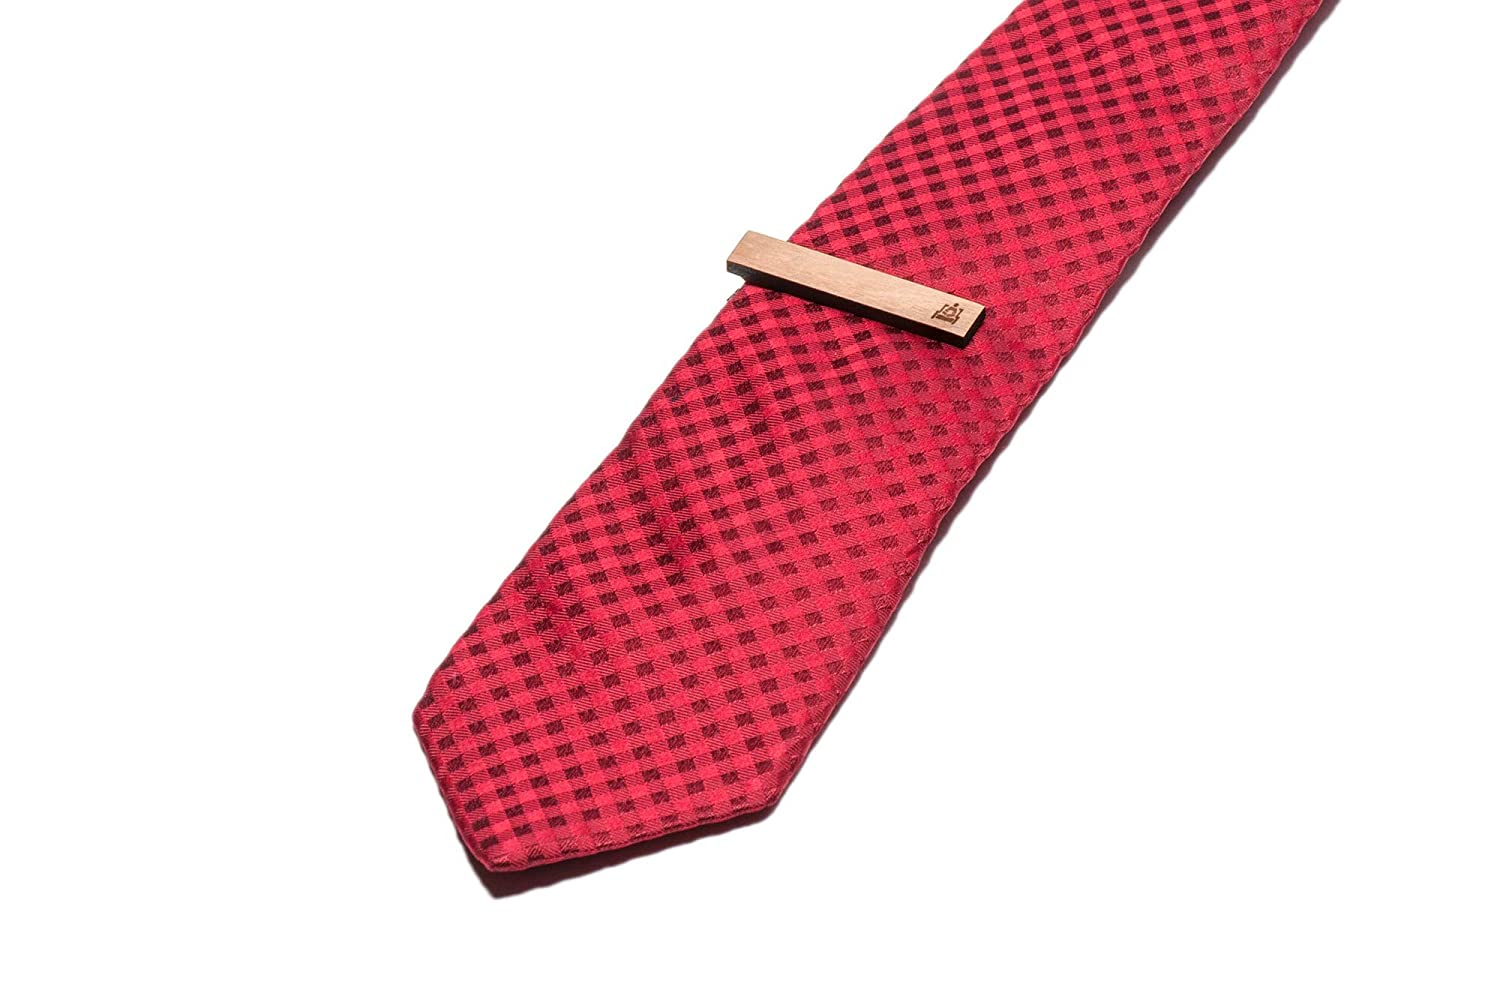 Cherry Wood Tie Bar Engraved in The USA Wooden Accessories Company Wooden Tie Clips with Laser Engraved Freelancer Design